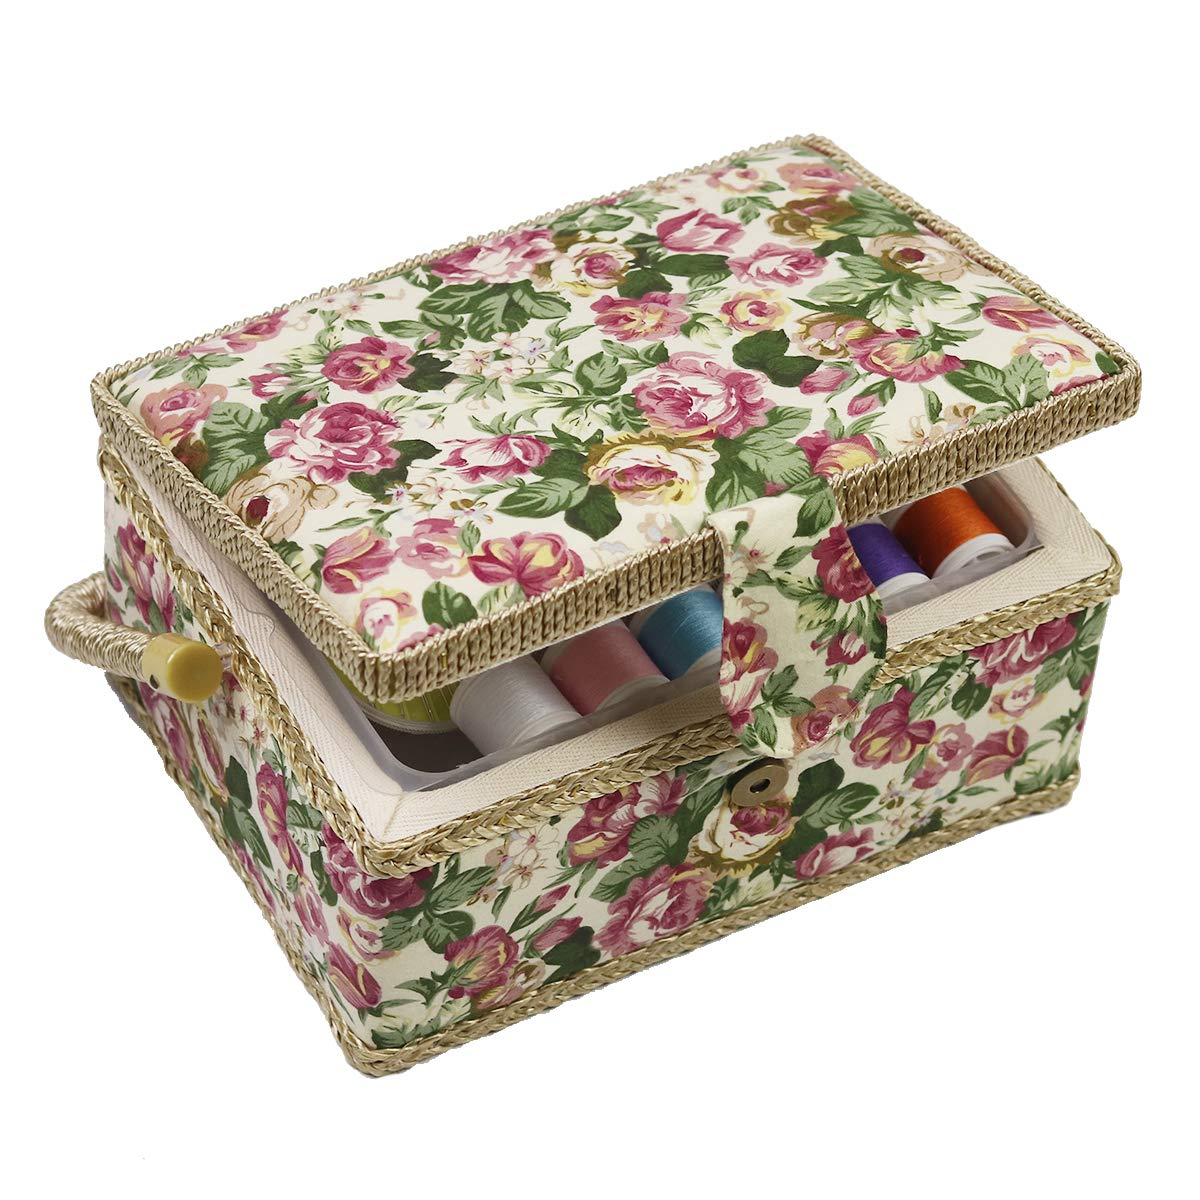 D& D Sewing Basket with Sewing Kit Accessories, Medium, Green Flower, 13400-708 DS1021